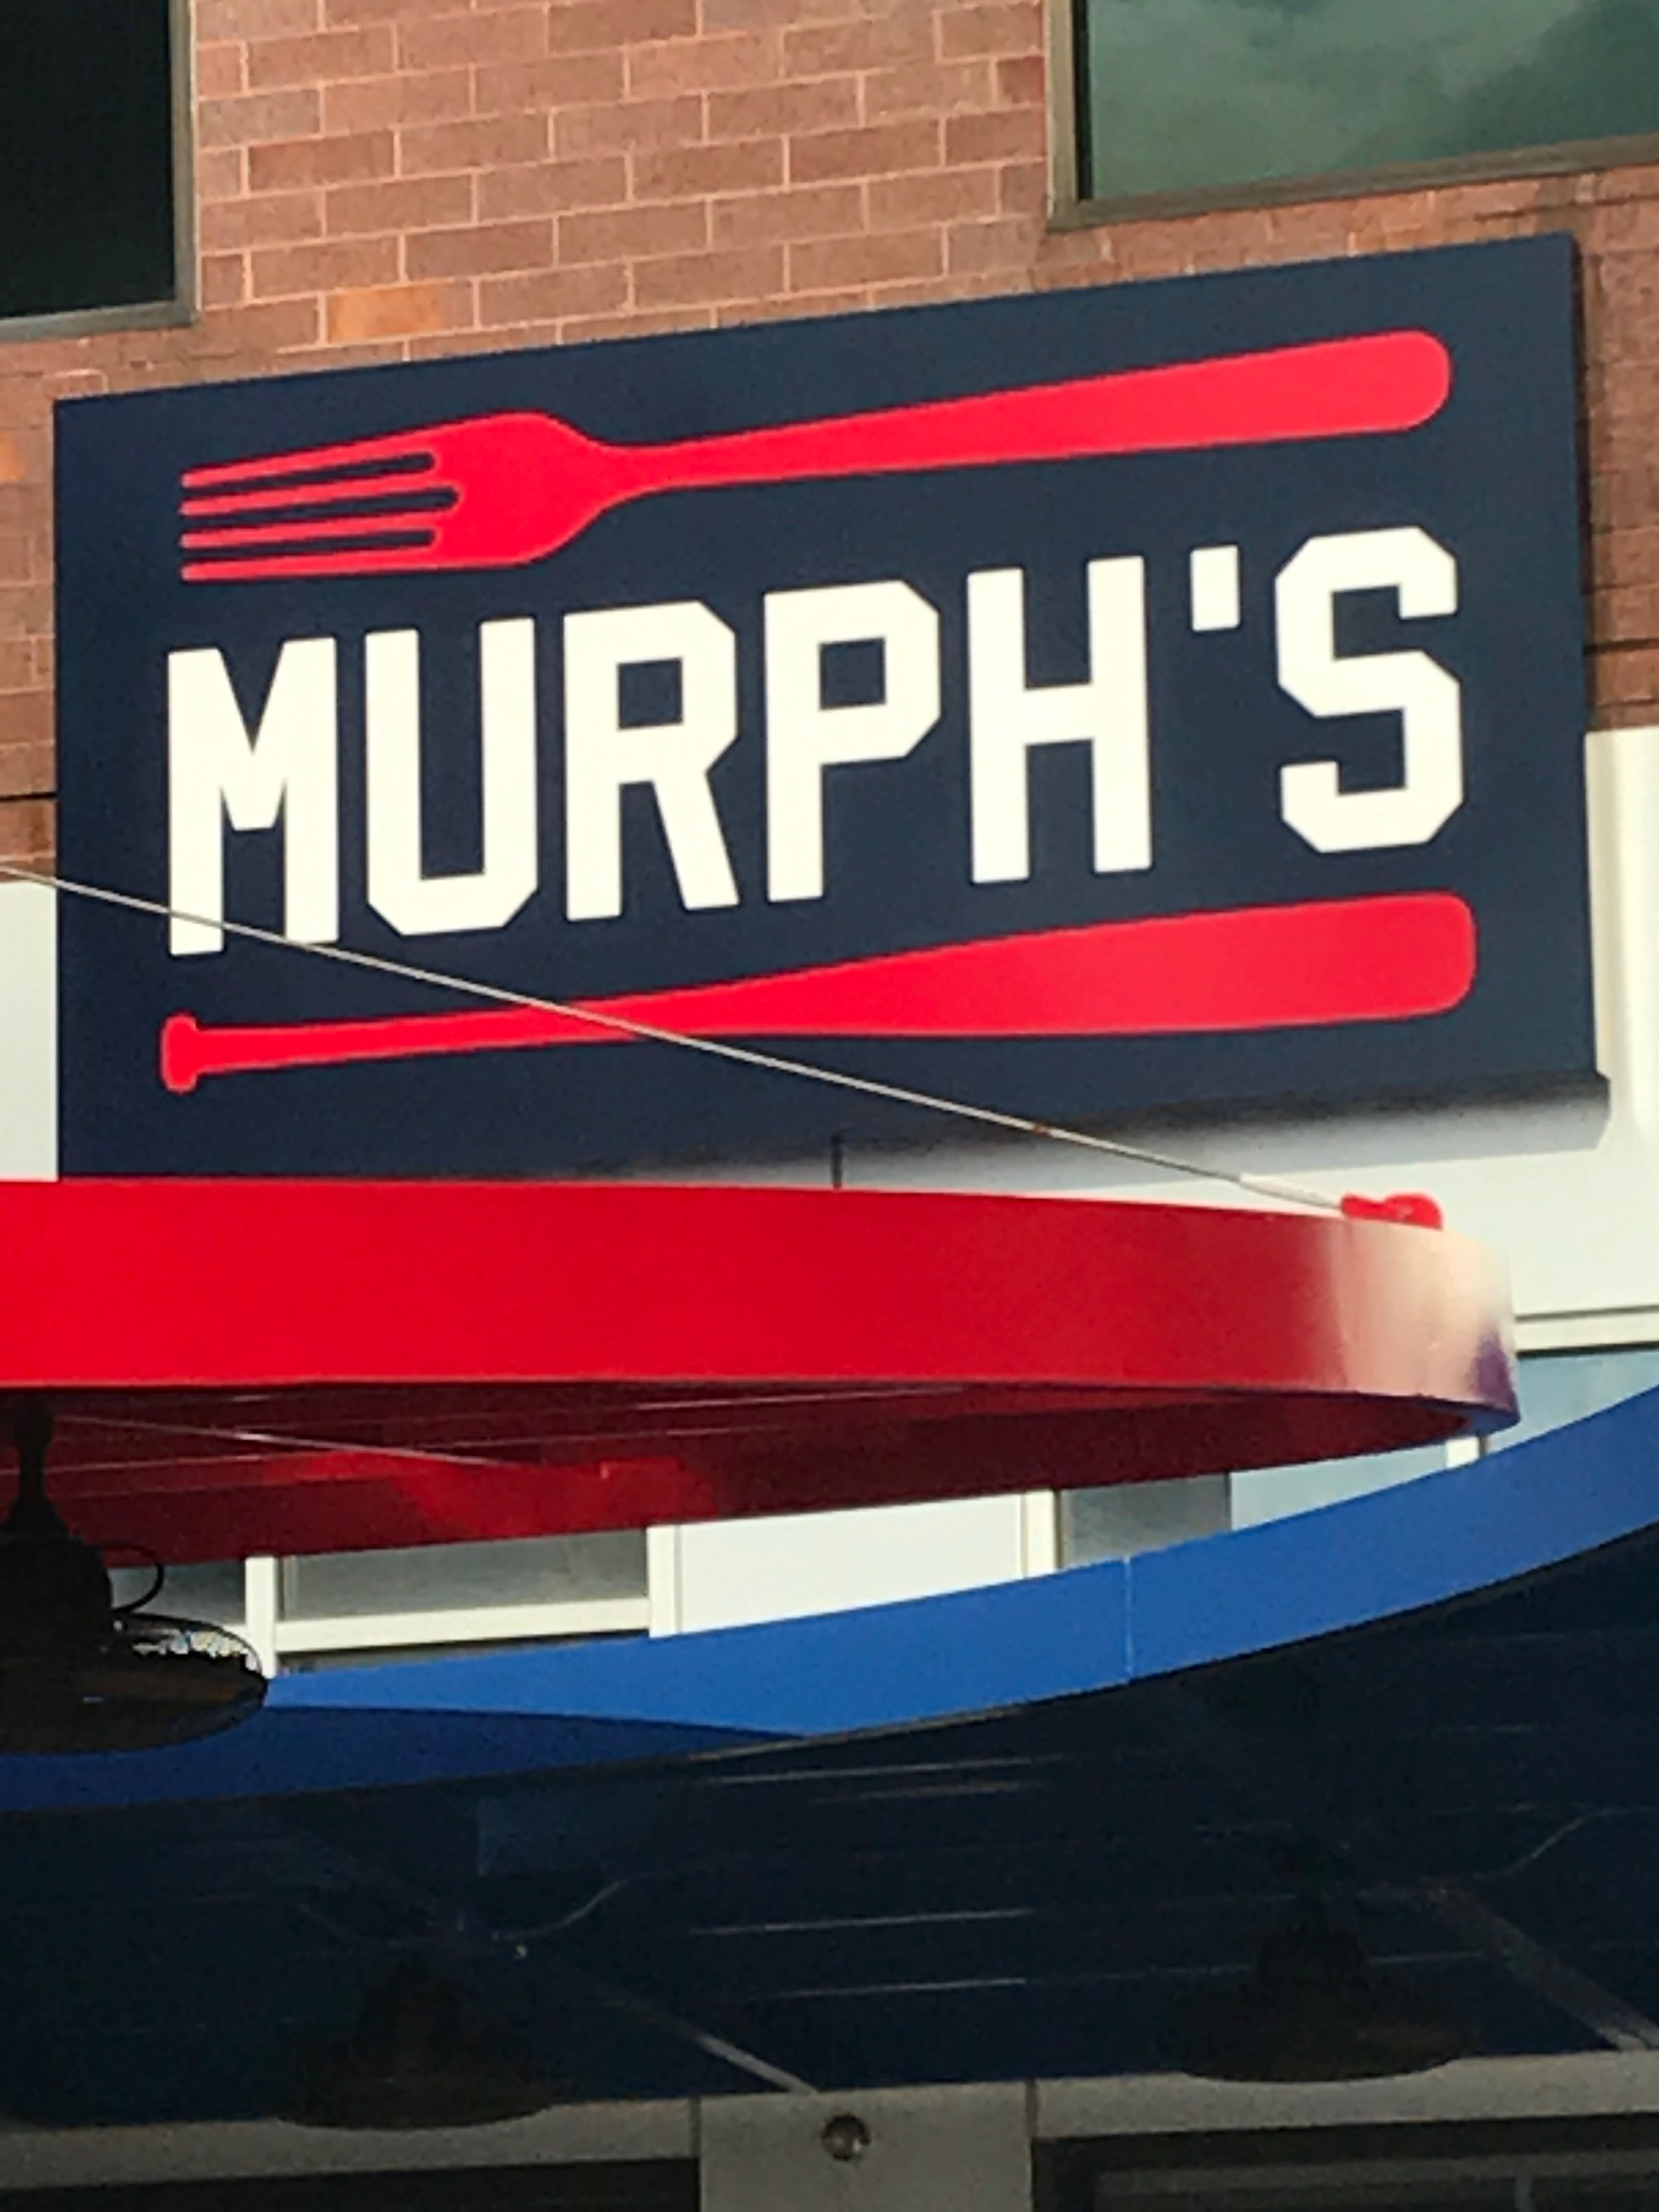 murphs-restaurant-2-jaxka-atlanta-georgia-commercial-development-construction-financing-investment-real-estate-tenant-leasing-cap-sale-roi-return-on-investment-business-owners-venture-capital.jpg